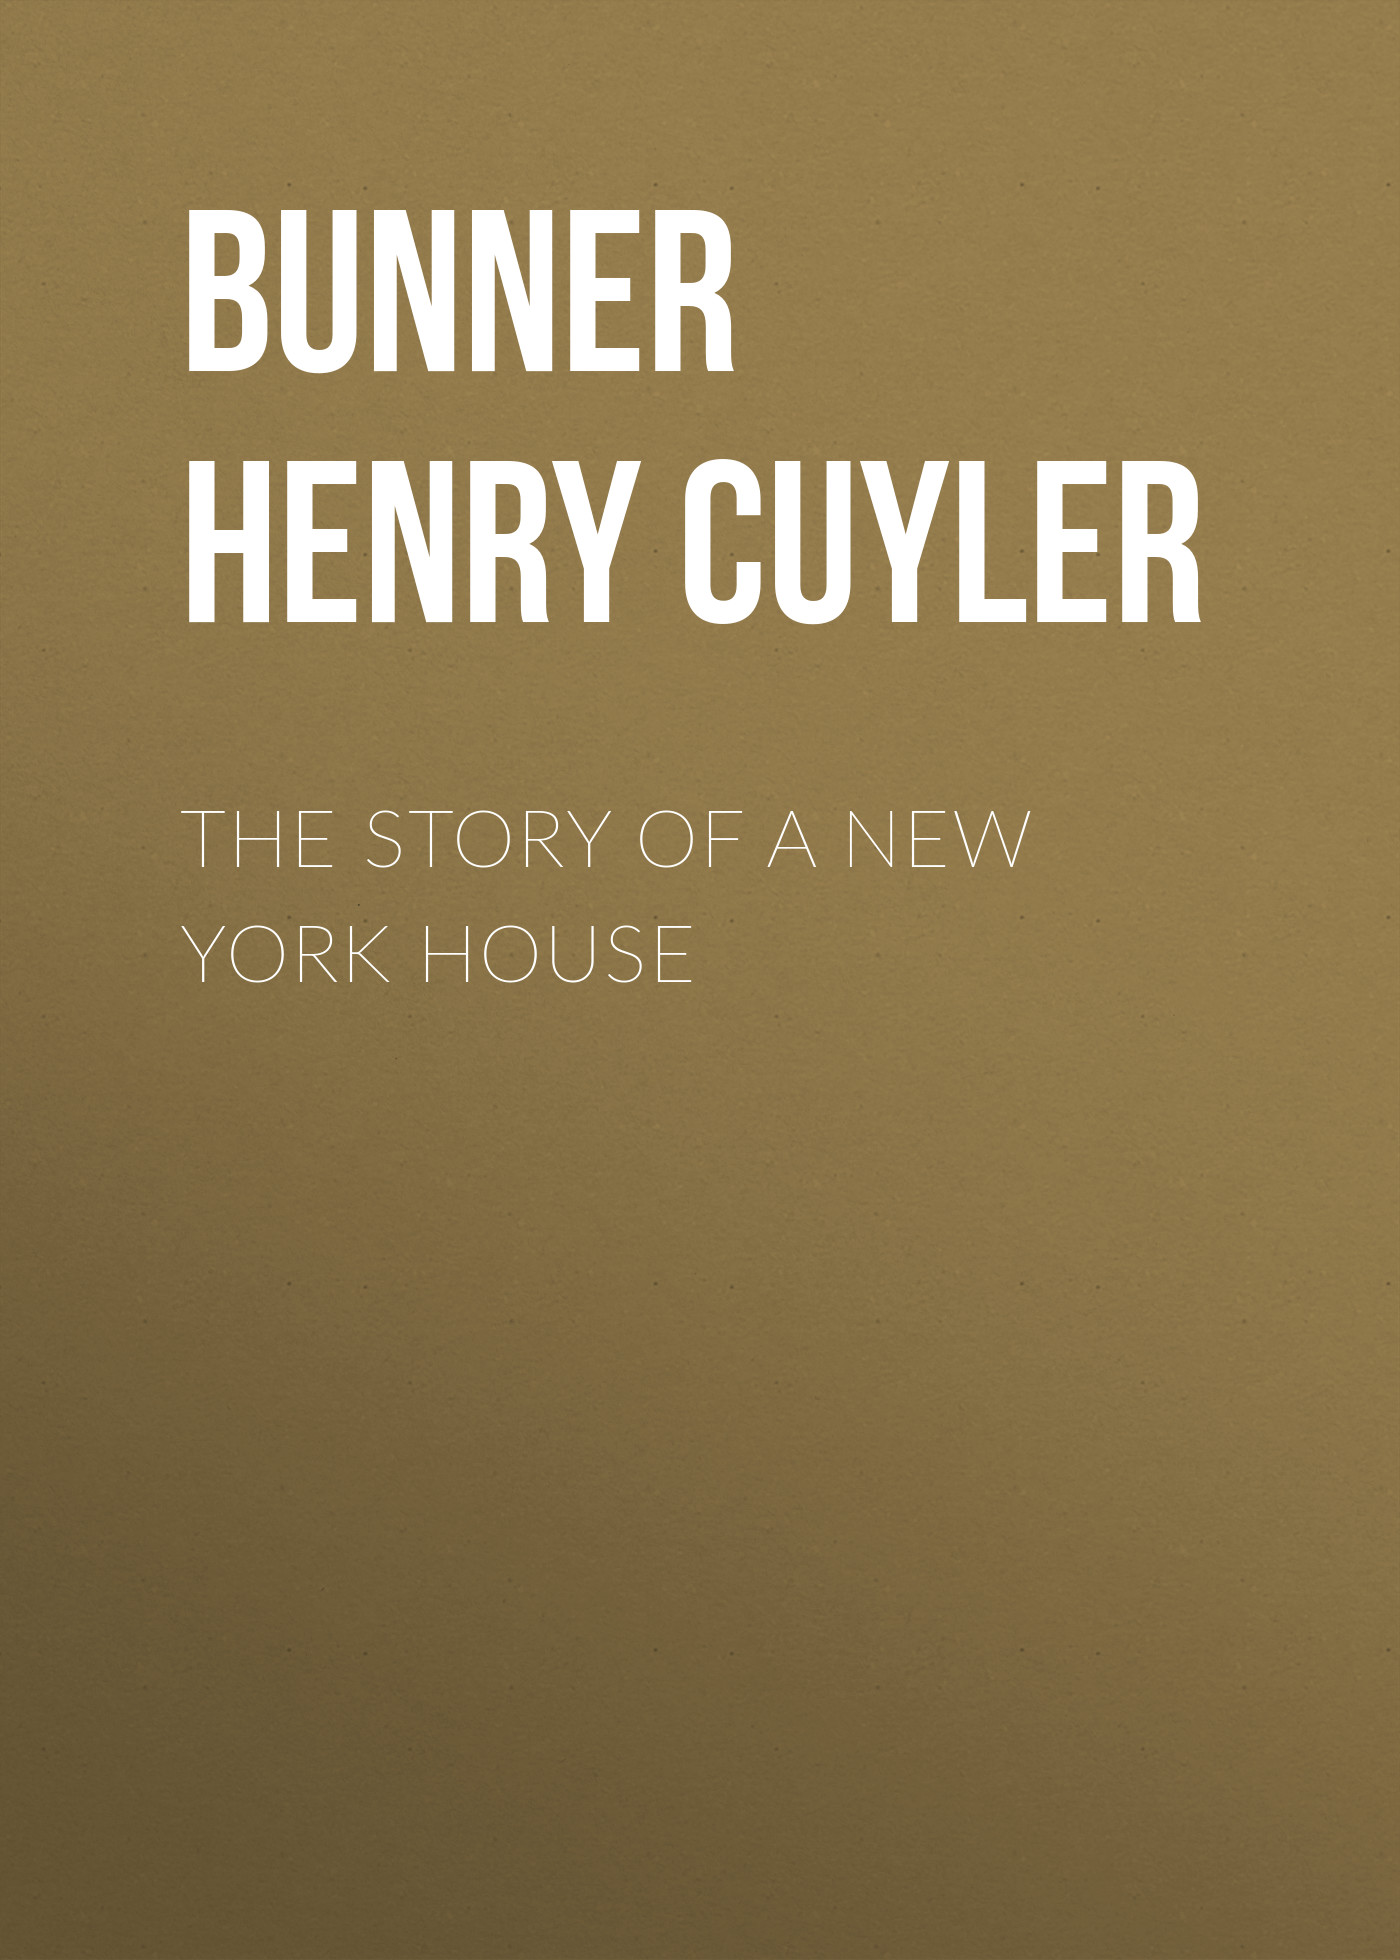 Bunner Henry Cuyler The Story of a New York House bunner henry cuyler short sixes